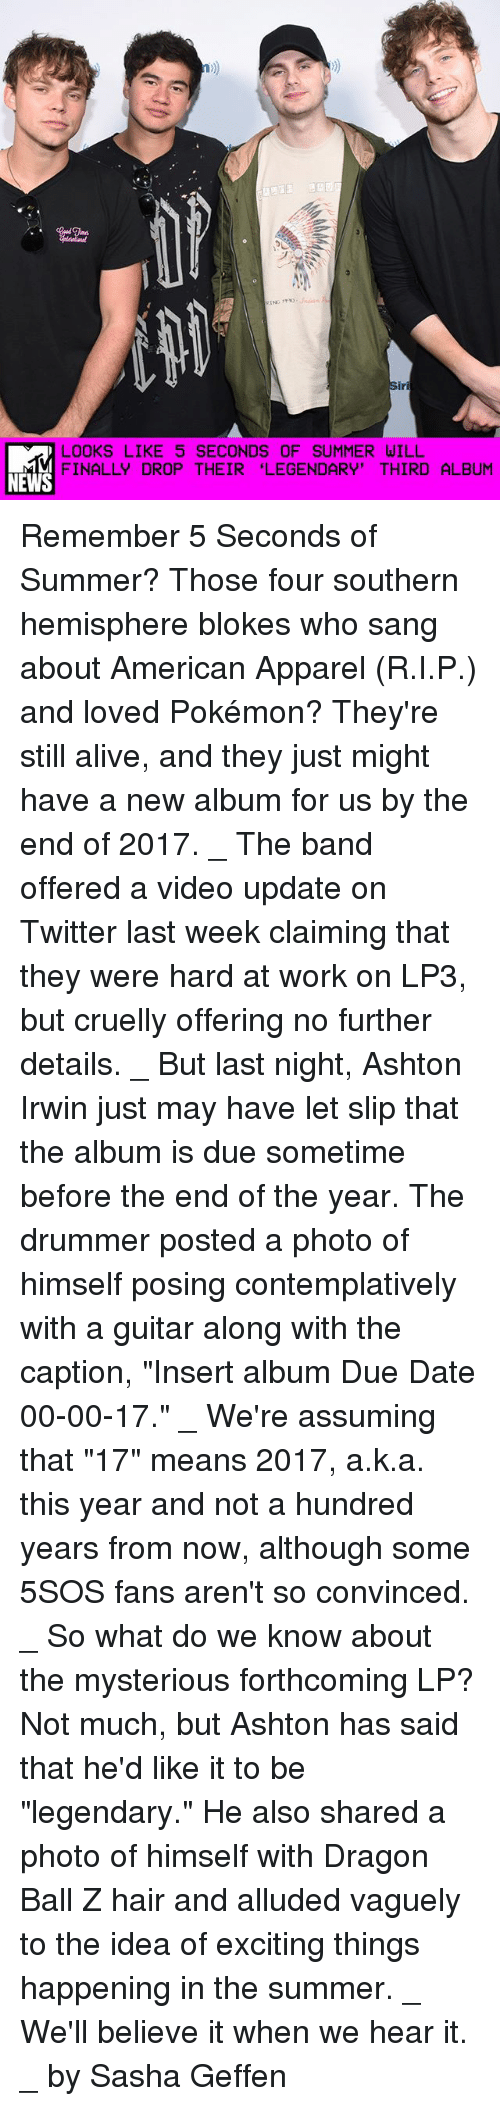 """dates: LOOKS LIKE 5 SECONDS OF SUMMER WILL  FINALLY DROP THEIR """"LEGENDARY' THIRD ALBUM  NEWS Remember 5 Seconds of Summer? Those four southern hemisphere blokes who sang about American Apparel (R.I.P.) and loved Pokémon? They're still alive, and they just might have a new album for us by the end of 2017. _ The band offered a video update on Twitter last week claiming that they were hard at work on LP3, but cruelly offering no further details. _ But last night, Ashton Irwin just may have let slip that the album is due sometime before the end of the year. The drummer posted a photo of himself posing contemplatively with a guitar along with the caption, """"Insert album Due Date 00-00-17."""" _ We're assuming that """"17"""" means 2017, a.k.a. this year and not a hundred years from now, although some 5SOS fans aren't so convinced. _ So what do we know about the mysterious forthcoming LP? Not much, but Ashton has said that he'd like it to be """"legendary."""" He also shared a photo of himself with Dragon Ball Z hair and alluded vaguely to the idea of exciting things happening in the summer. _ We'll believe it when we hear it. _ by Sasha Geffen"""